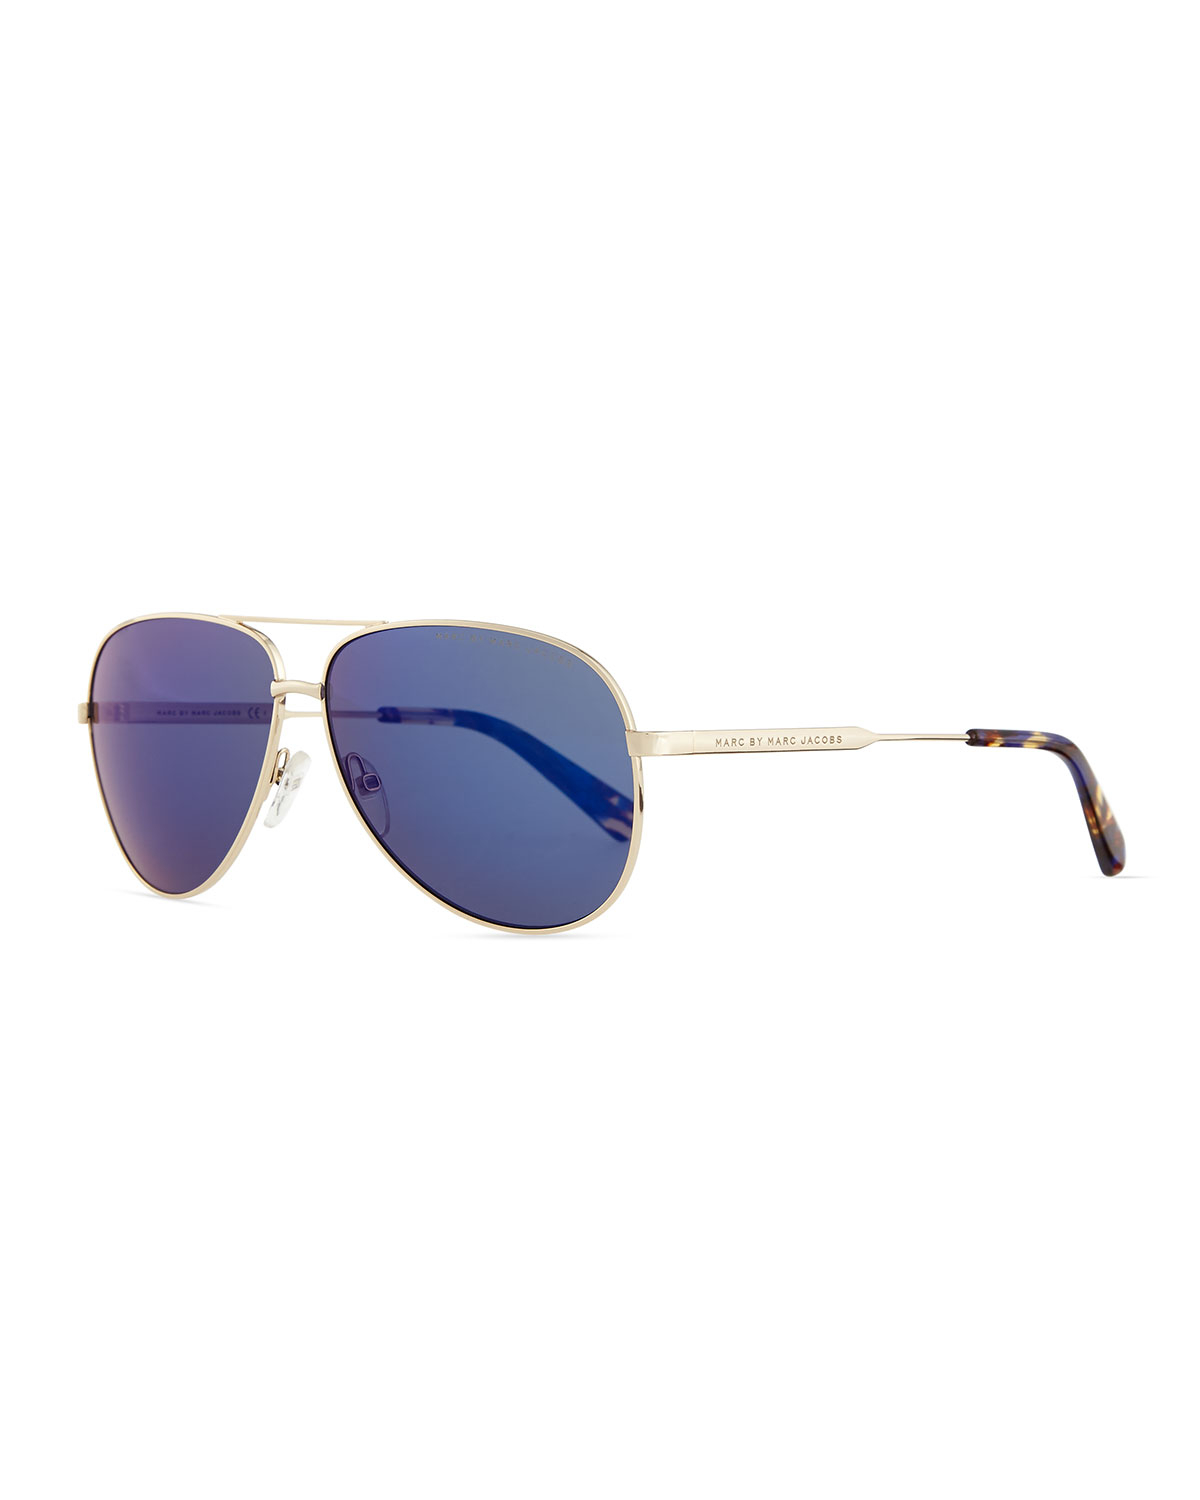 875971ed80d1 Blue Lens Aviator Sunglasses